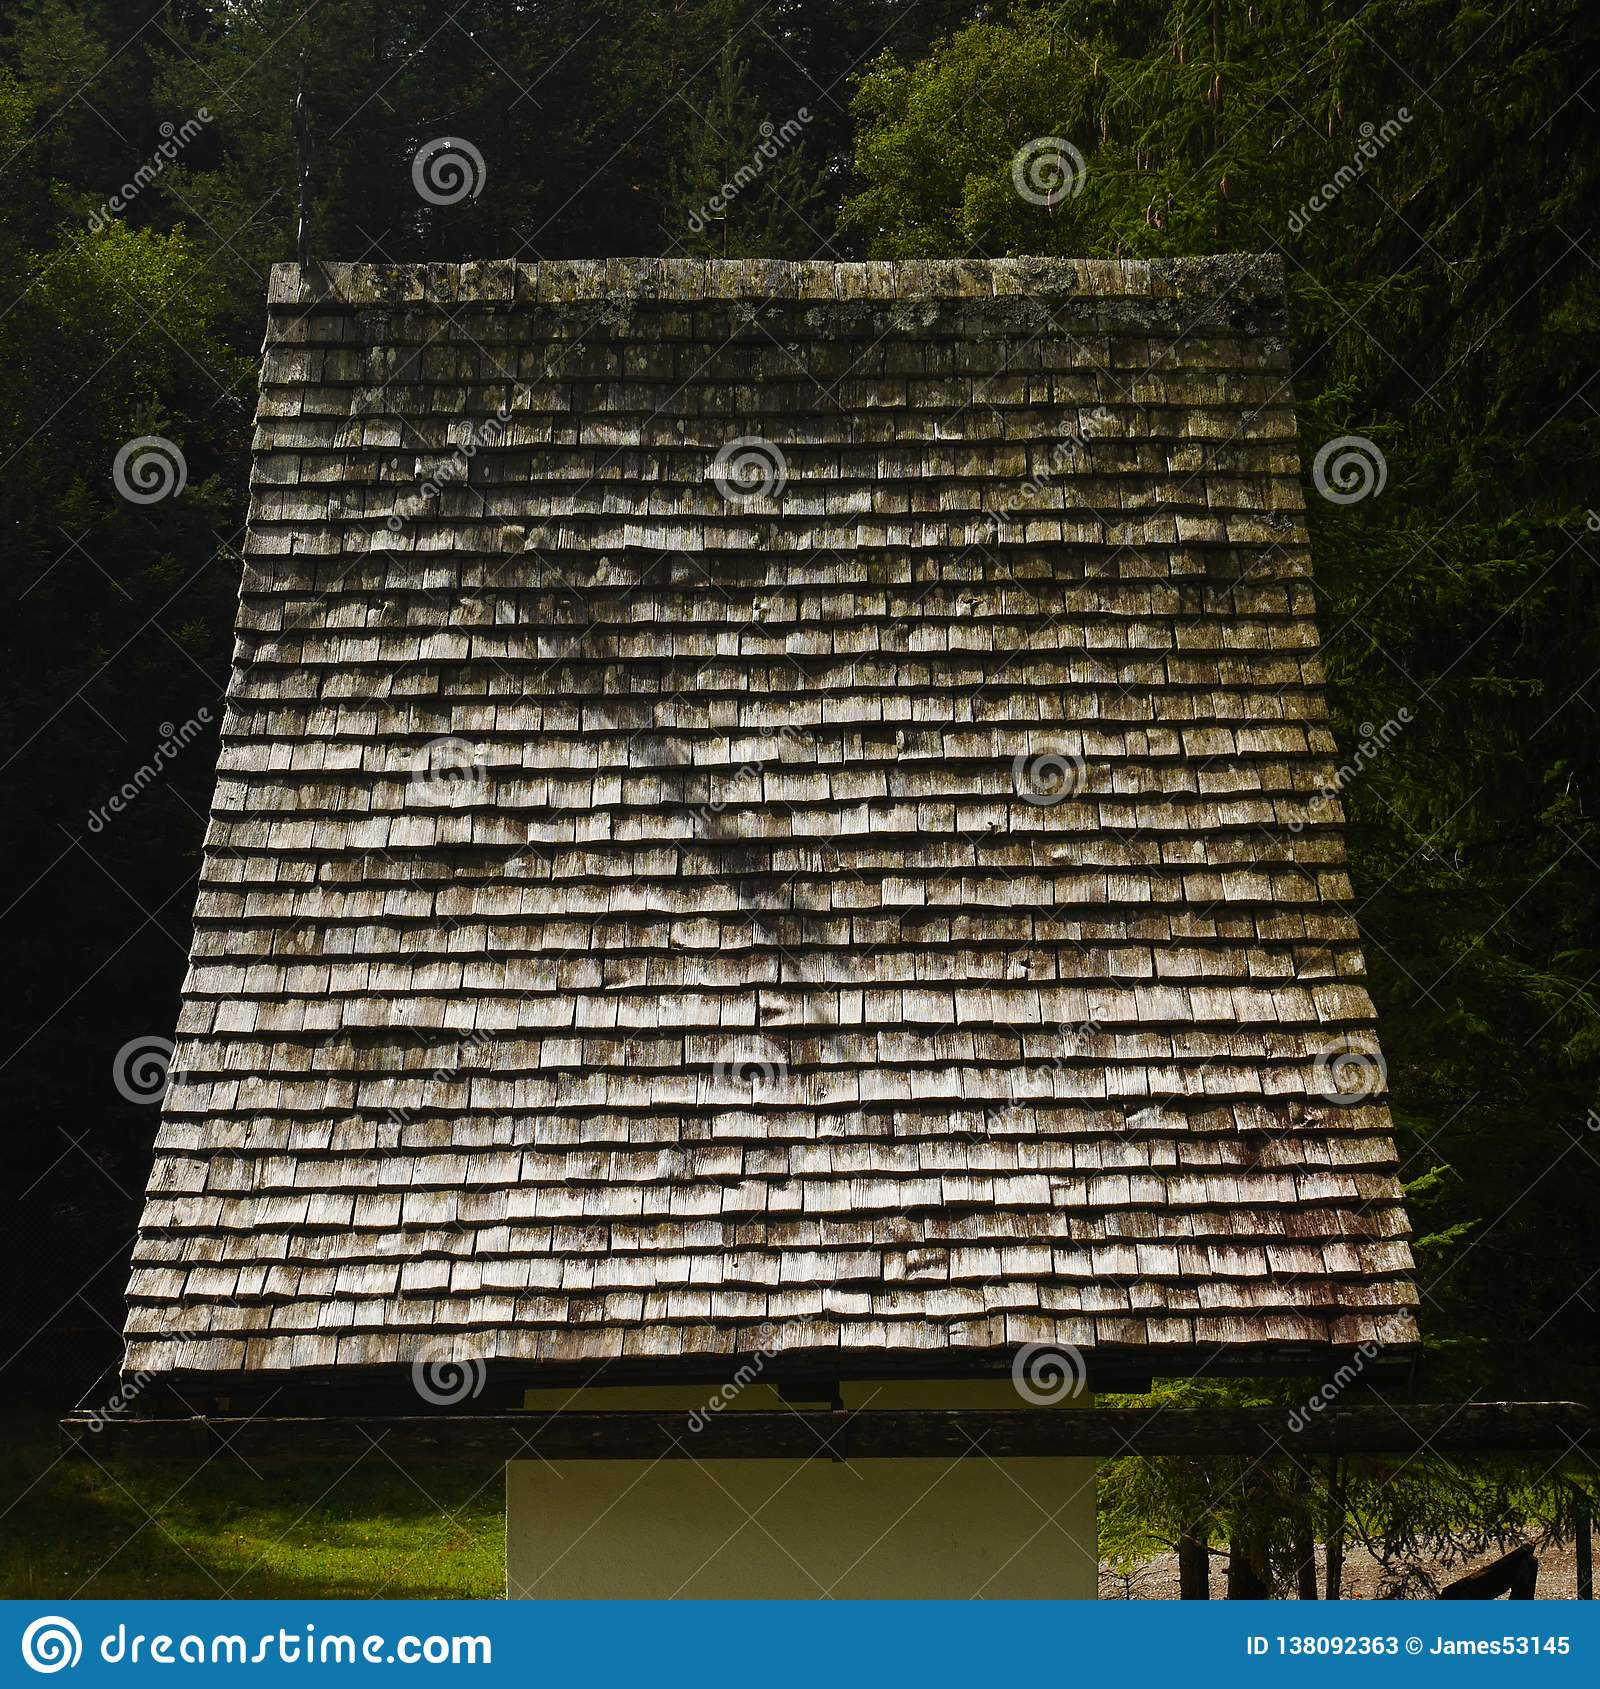 Wooden Roof of Small Church / Shrine in Austria